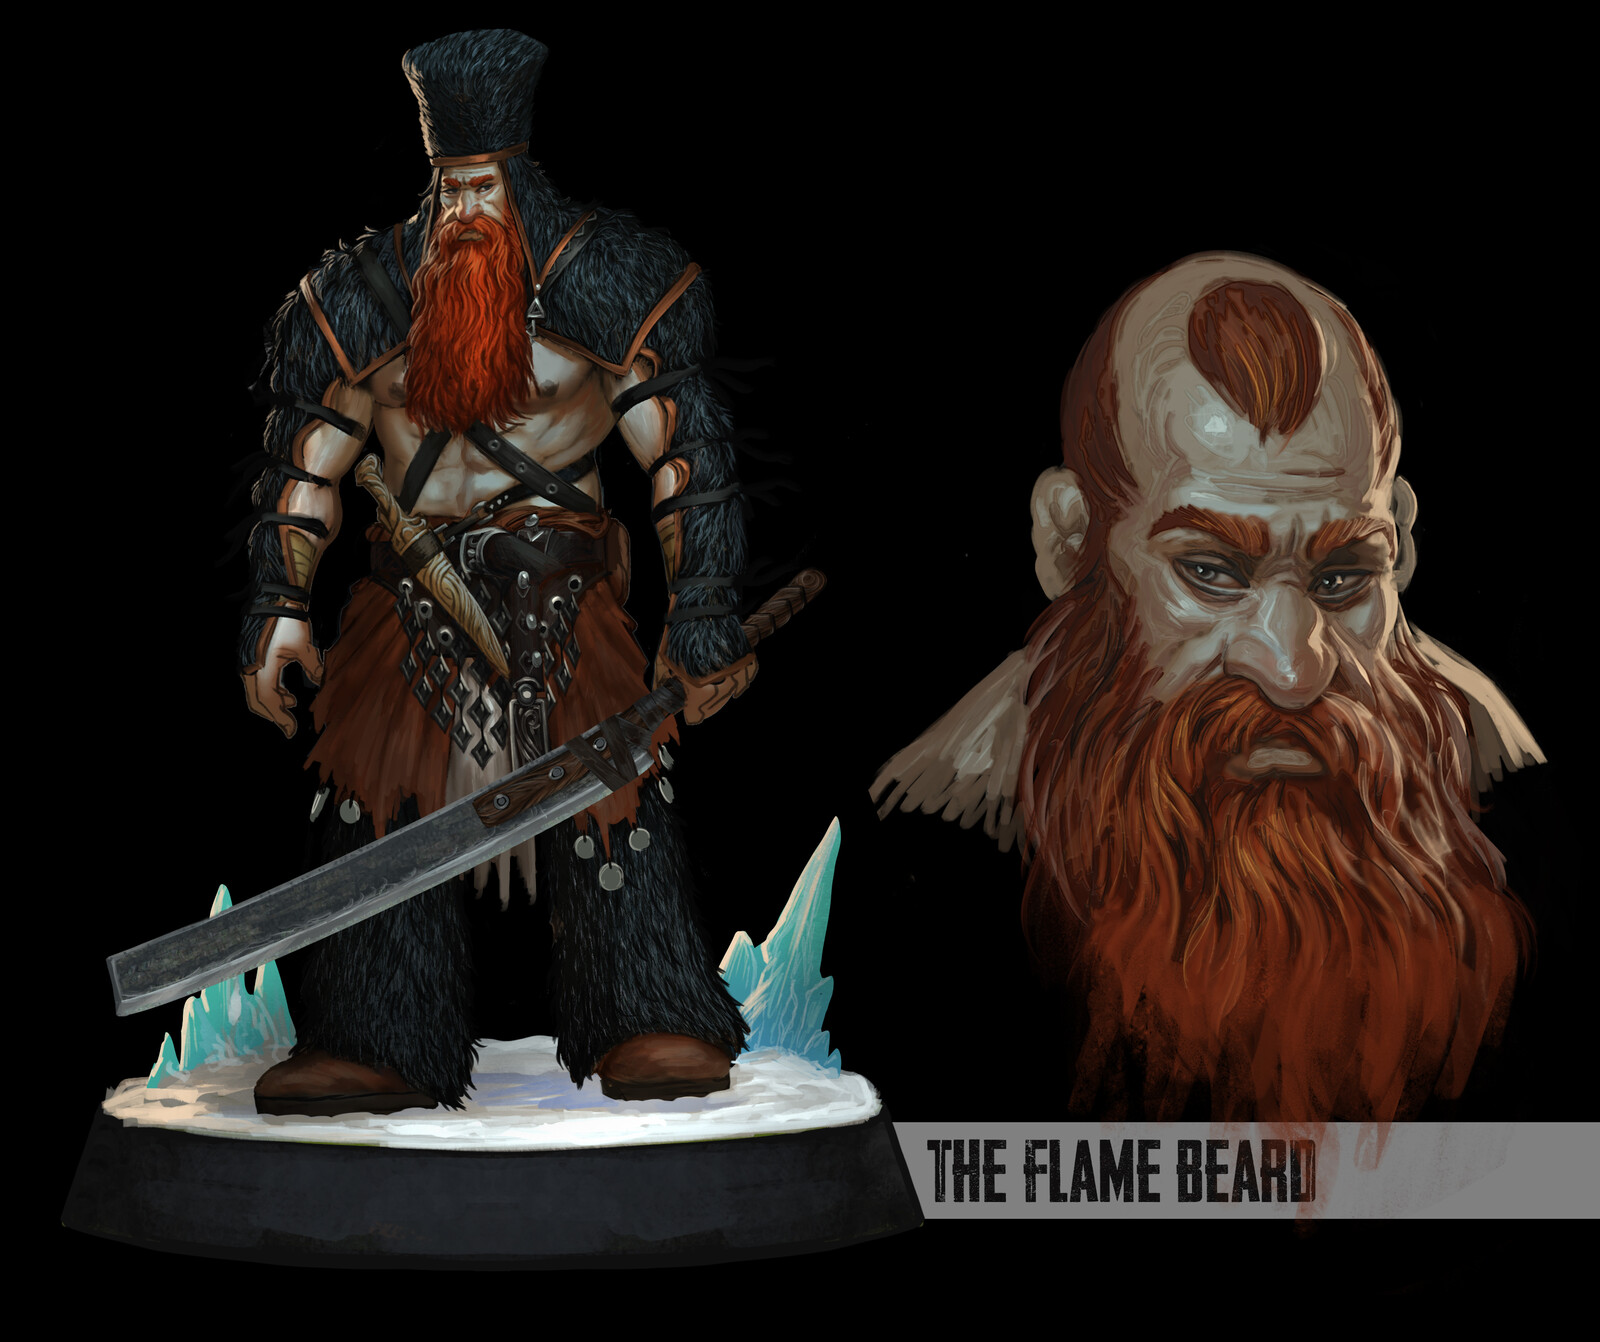 The Flame Beard